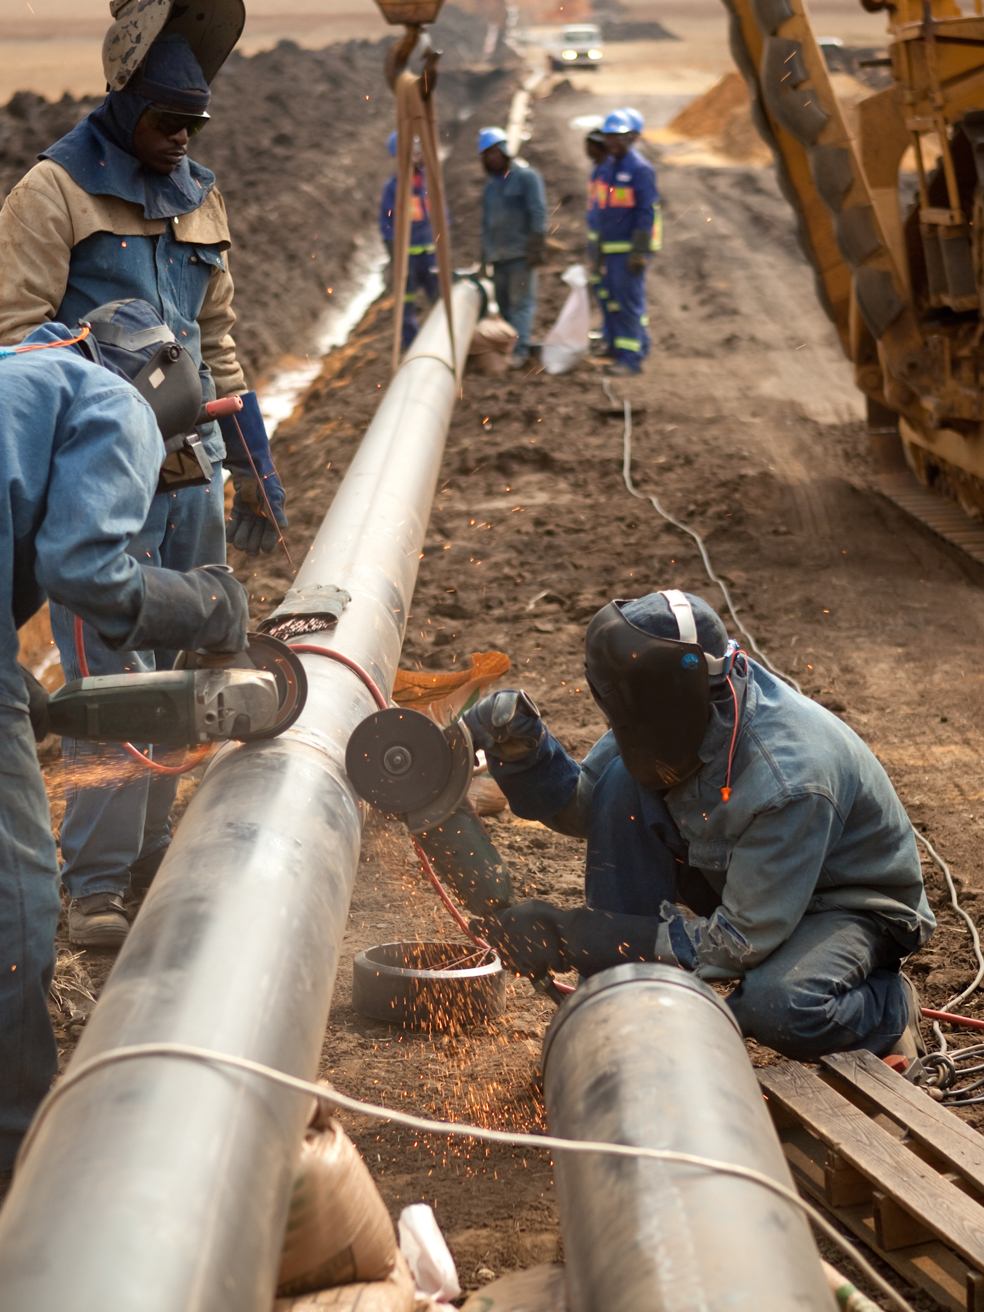 A crew of workers assembling an oil pipeline